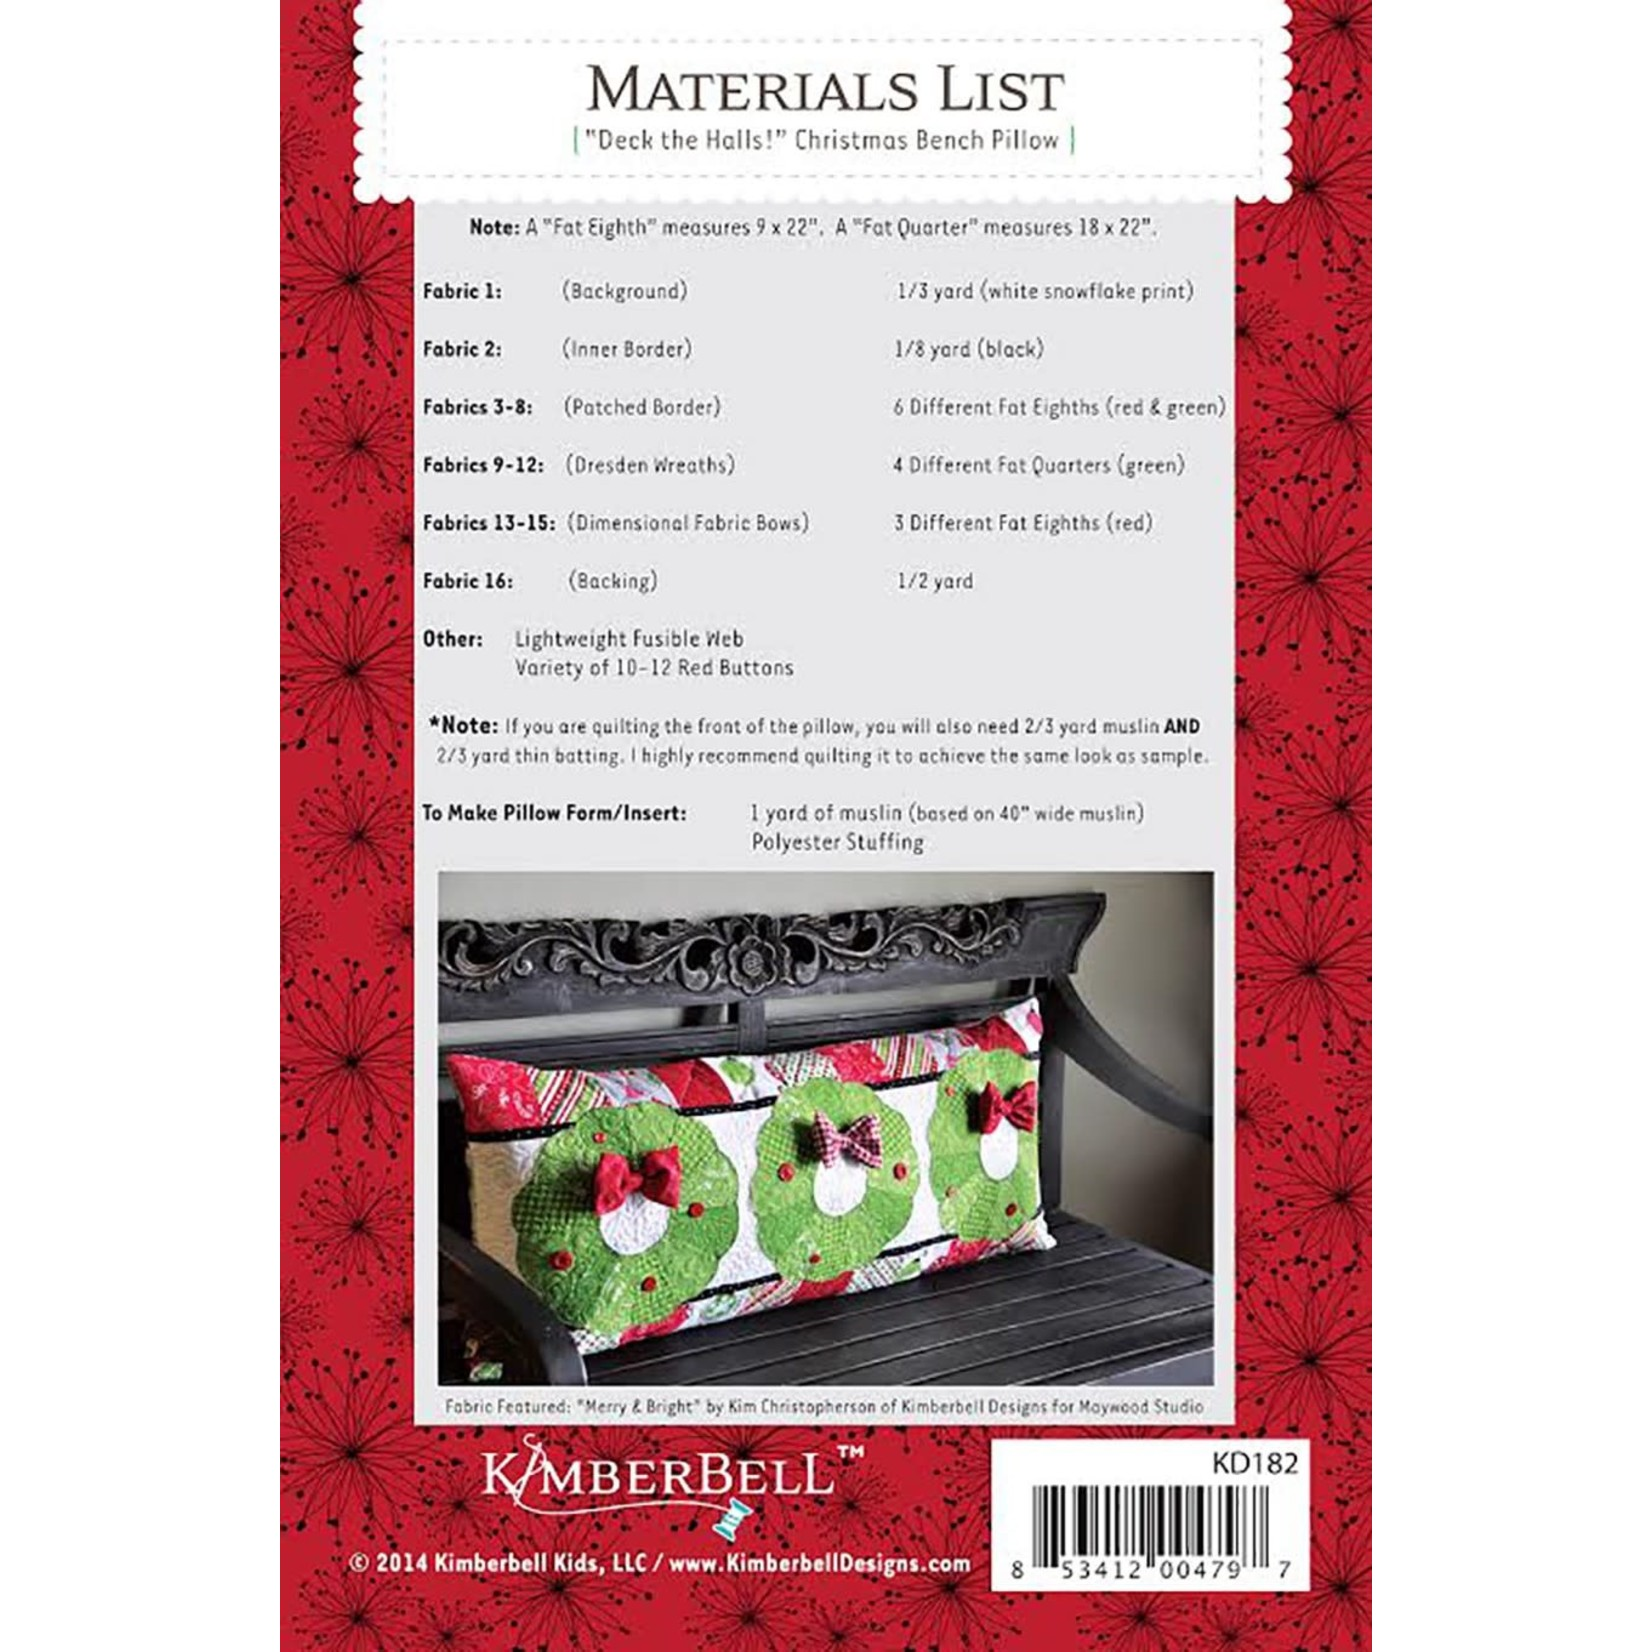 KIMBERBELL DESIGNS Deck the Halls Bench Pillow Pattern